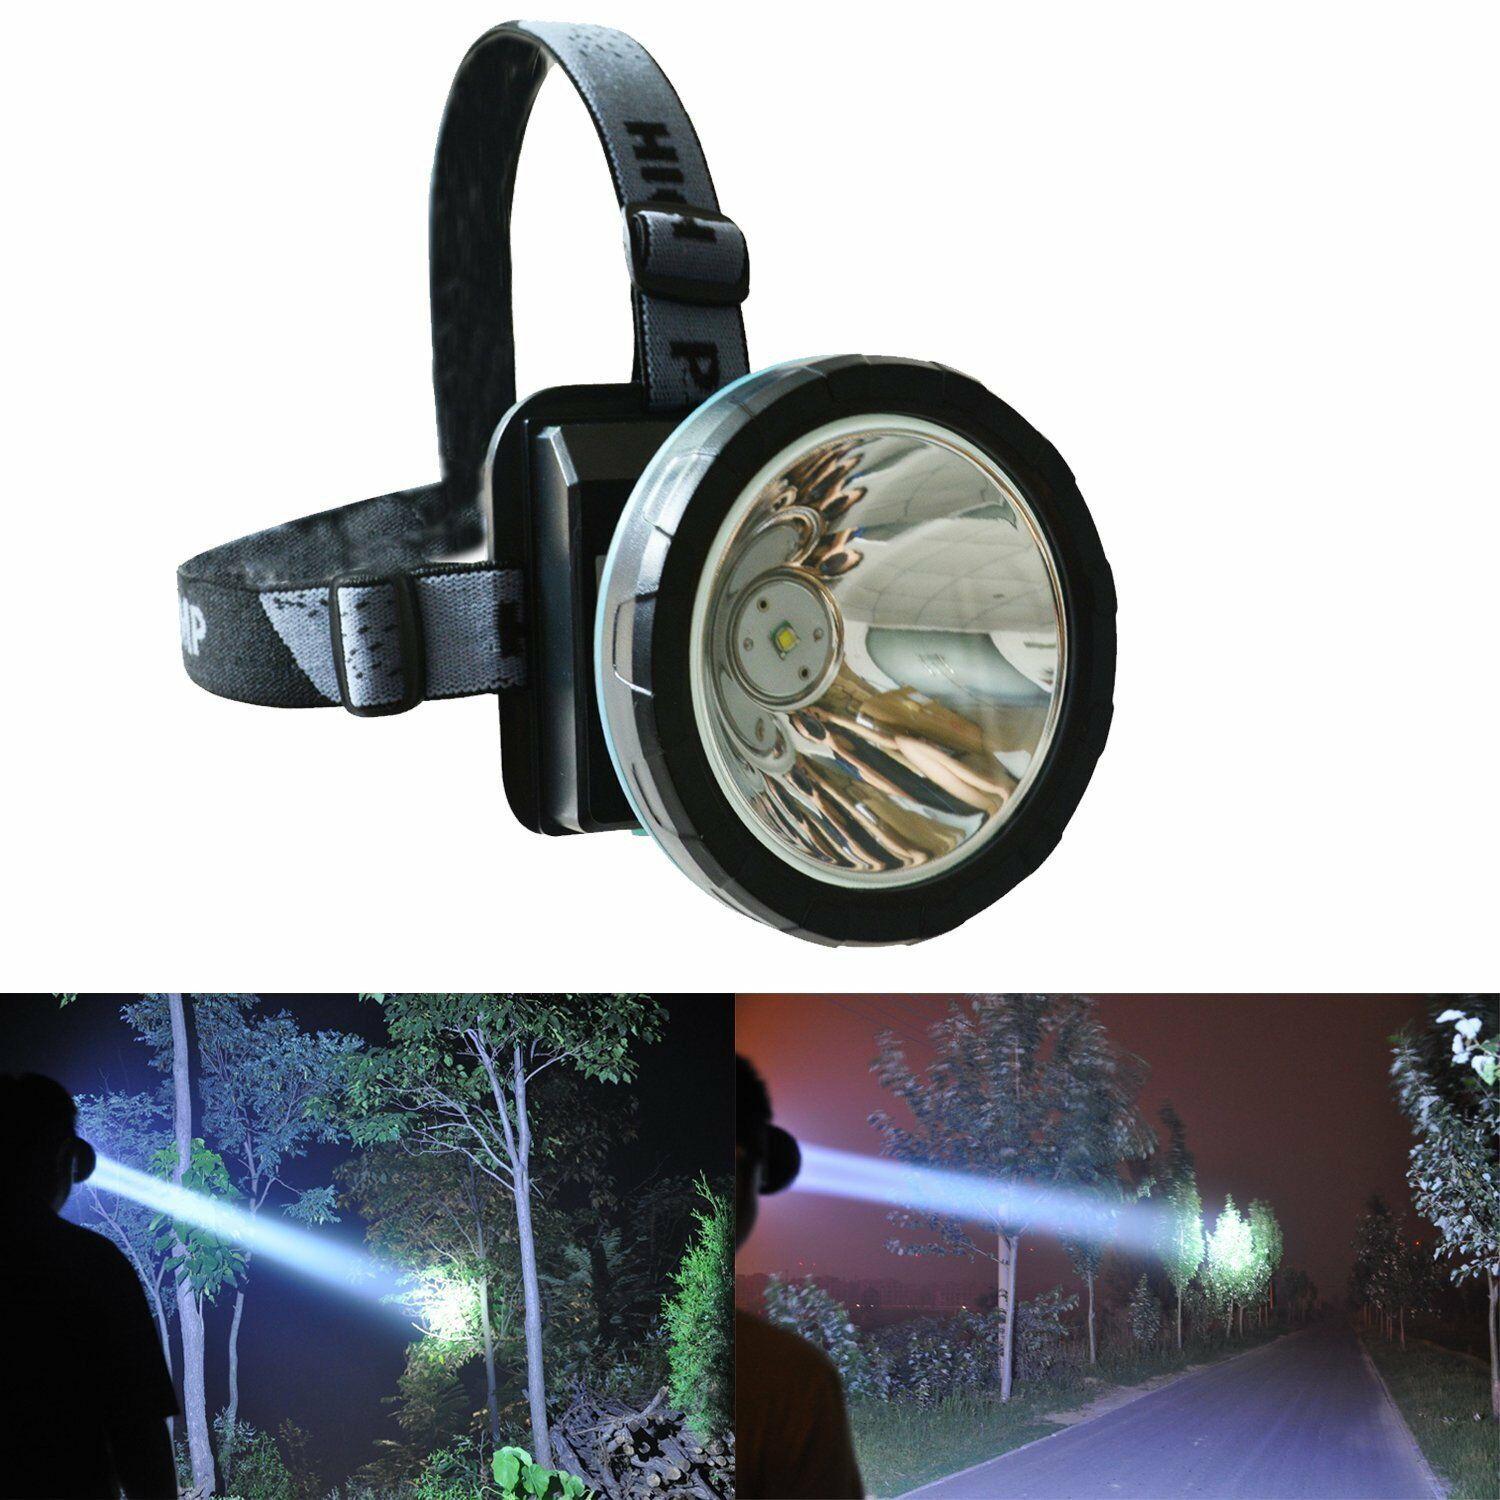 Odear Super Bright LED Headlamp Rechargeable Headlight Flash